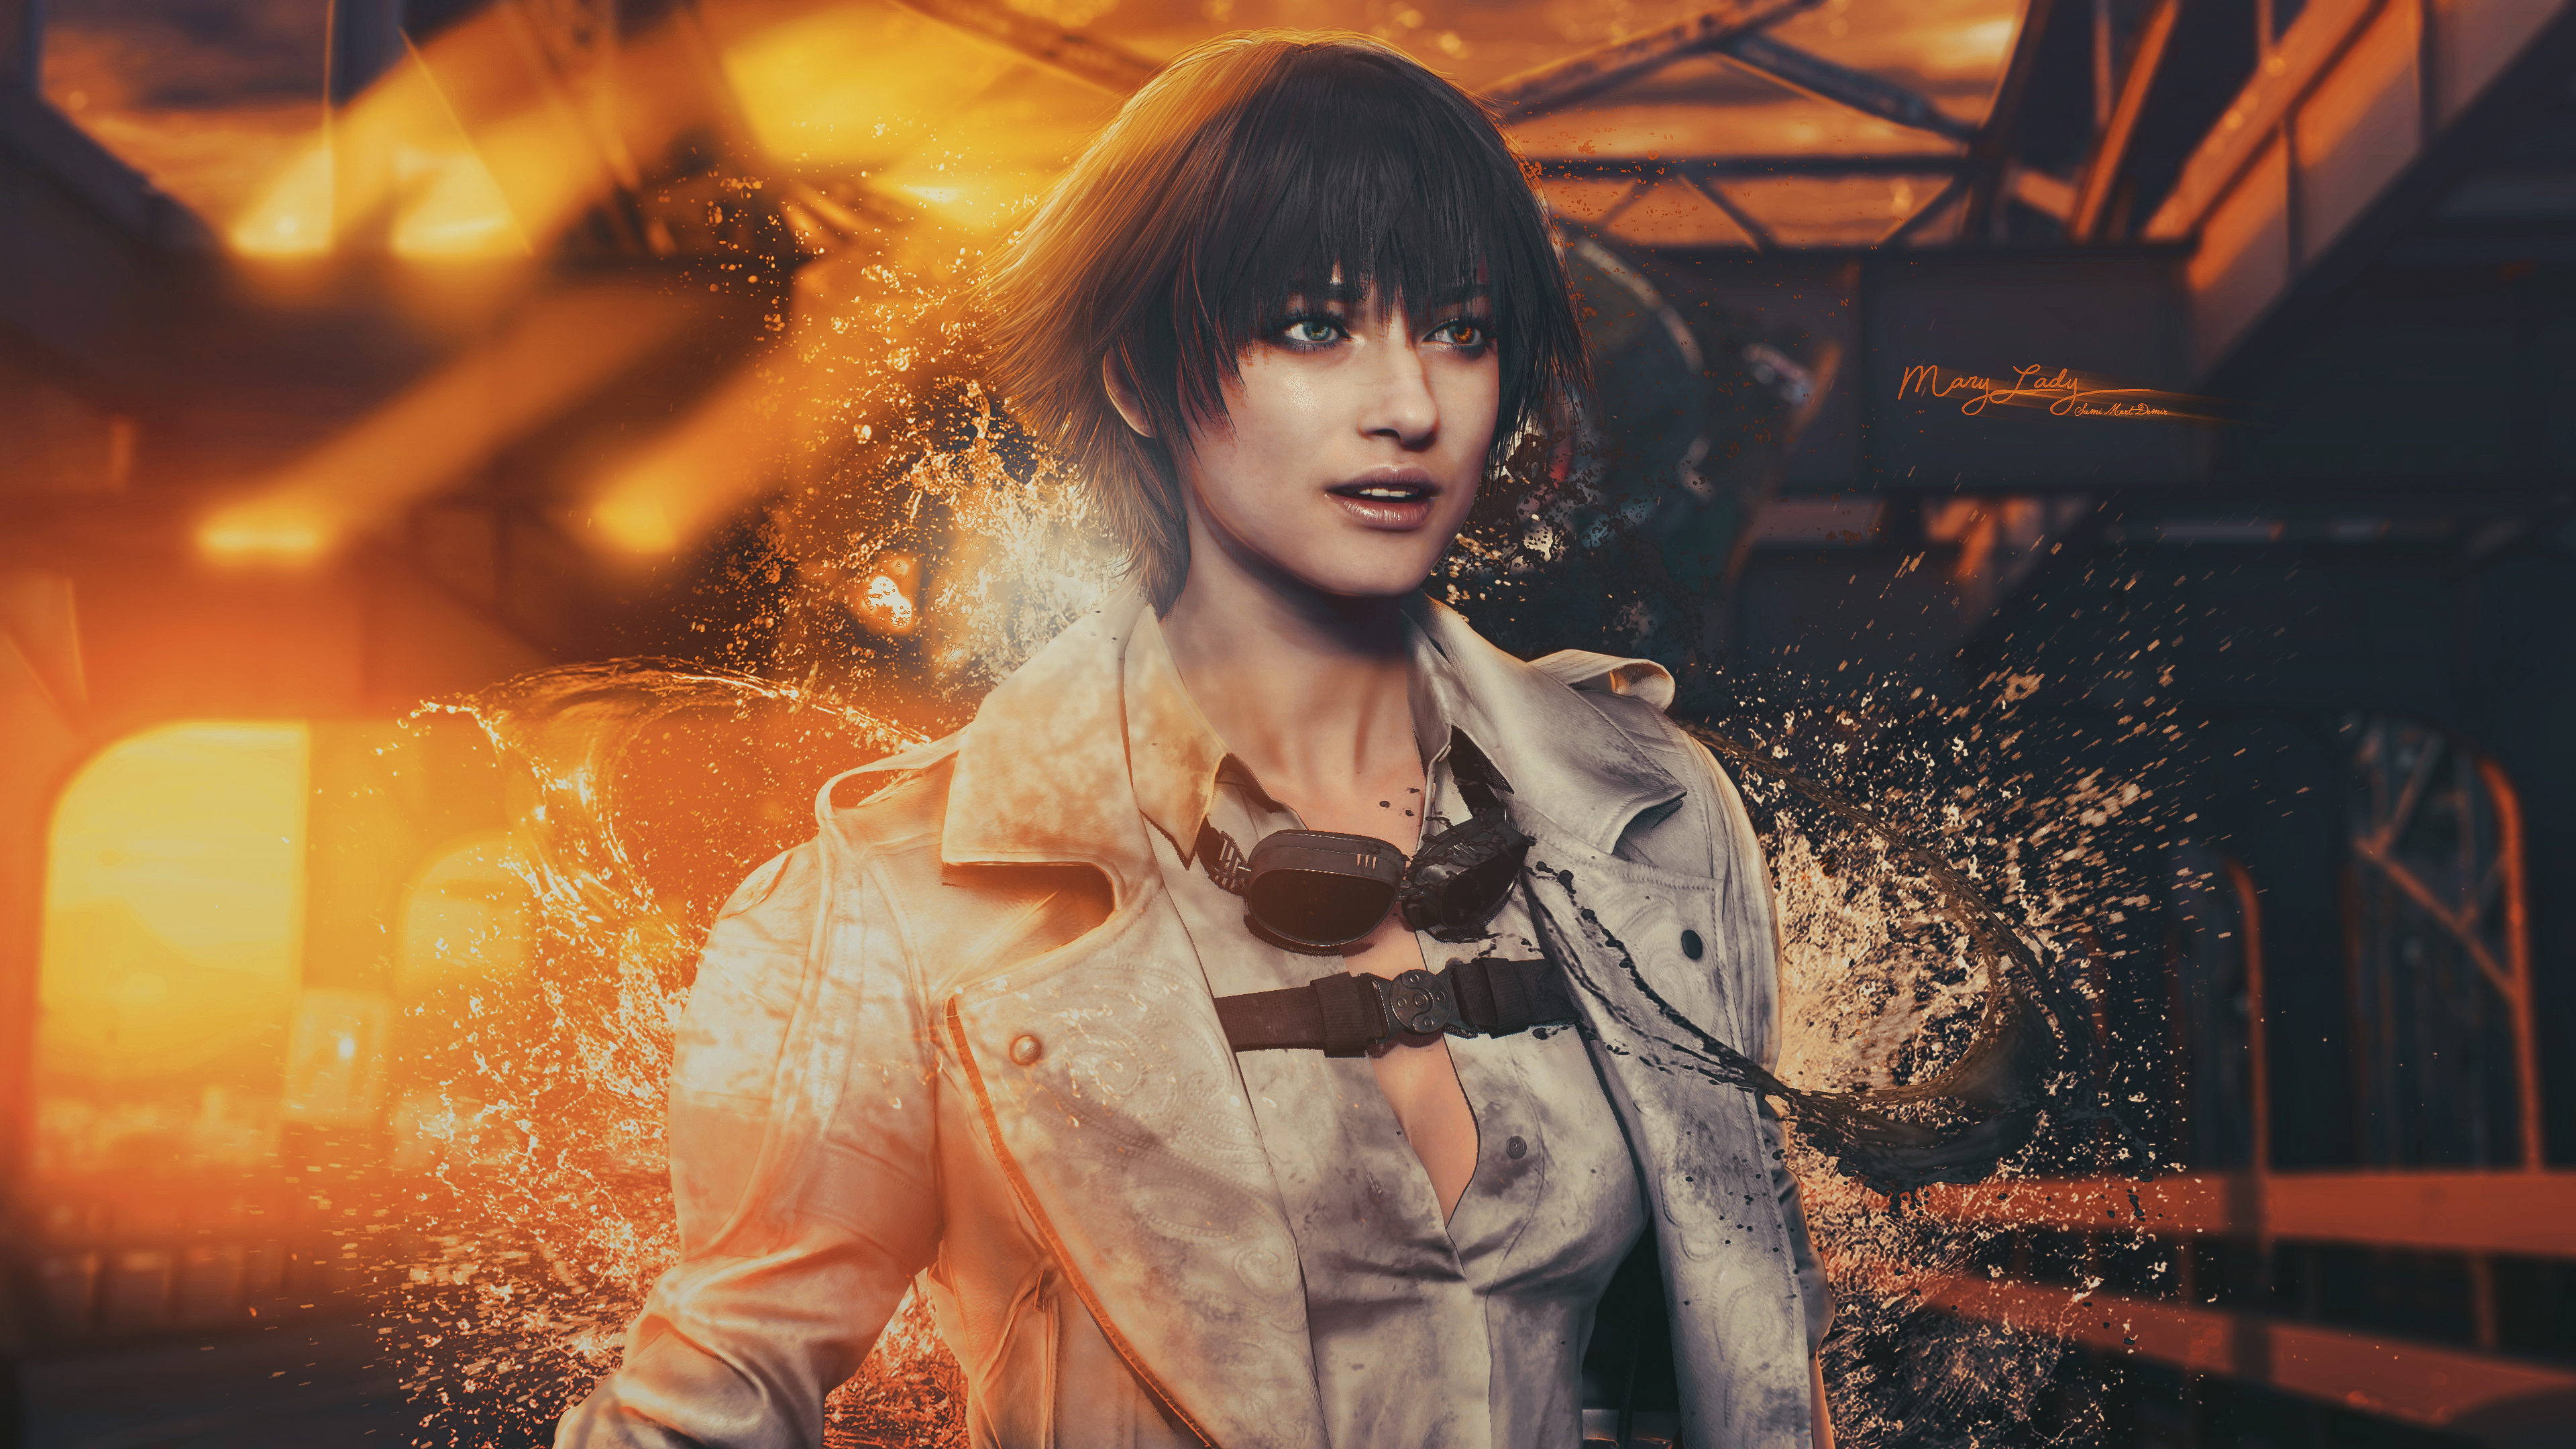 Devil May Cry 5 Wallpaper: Mary Lady Devil May Cry 4k, HD Games, 4k Wallpapers